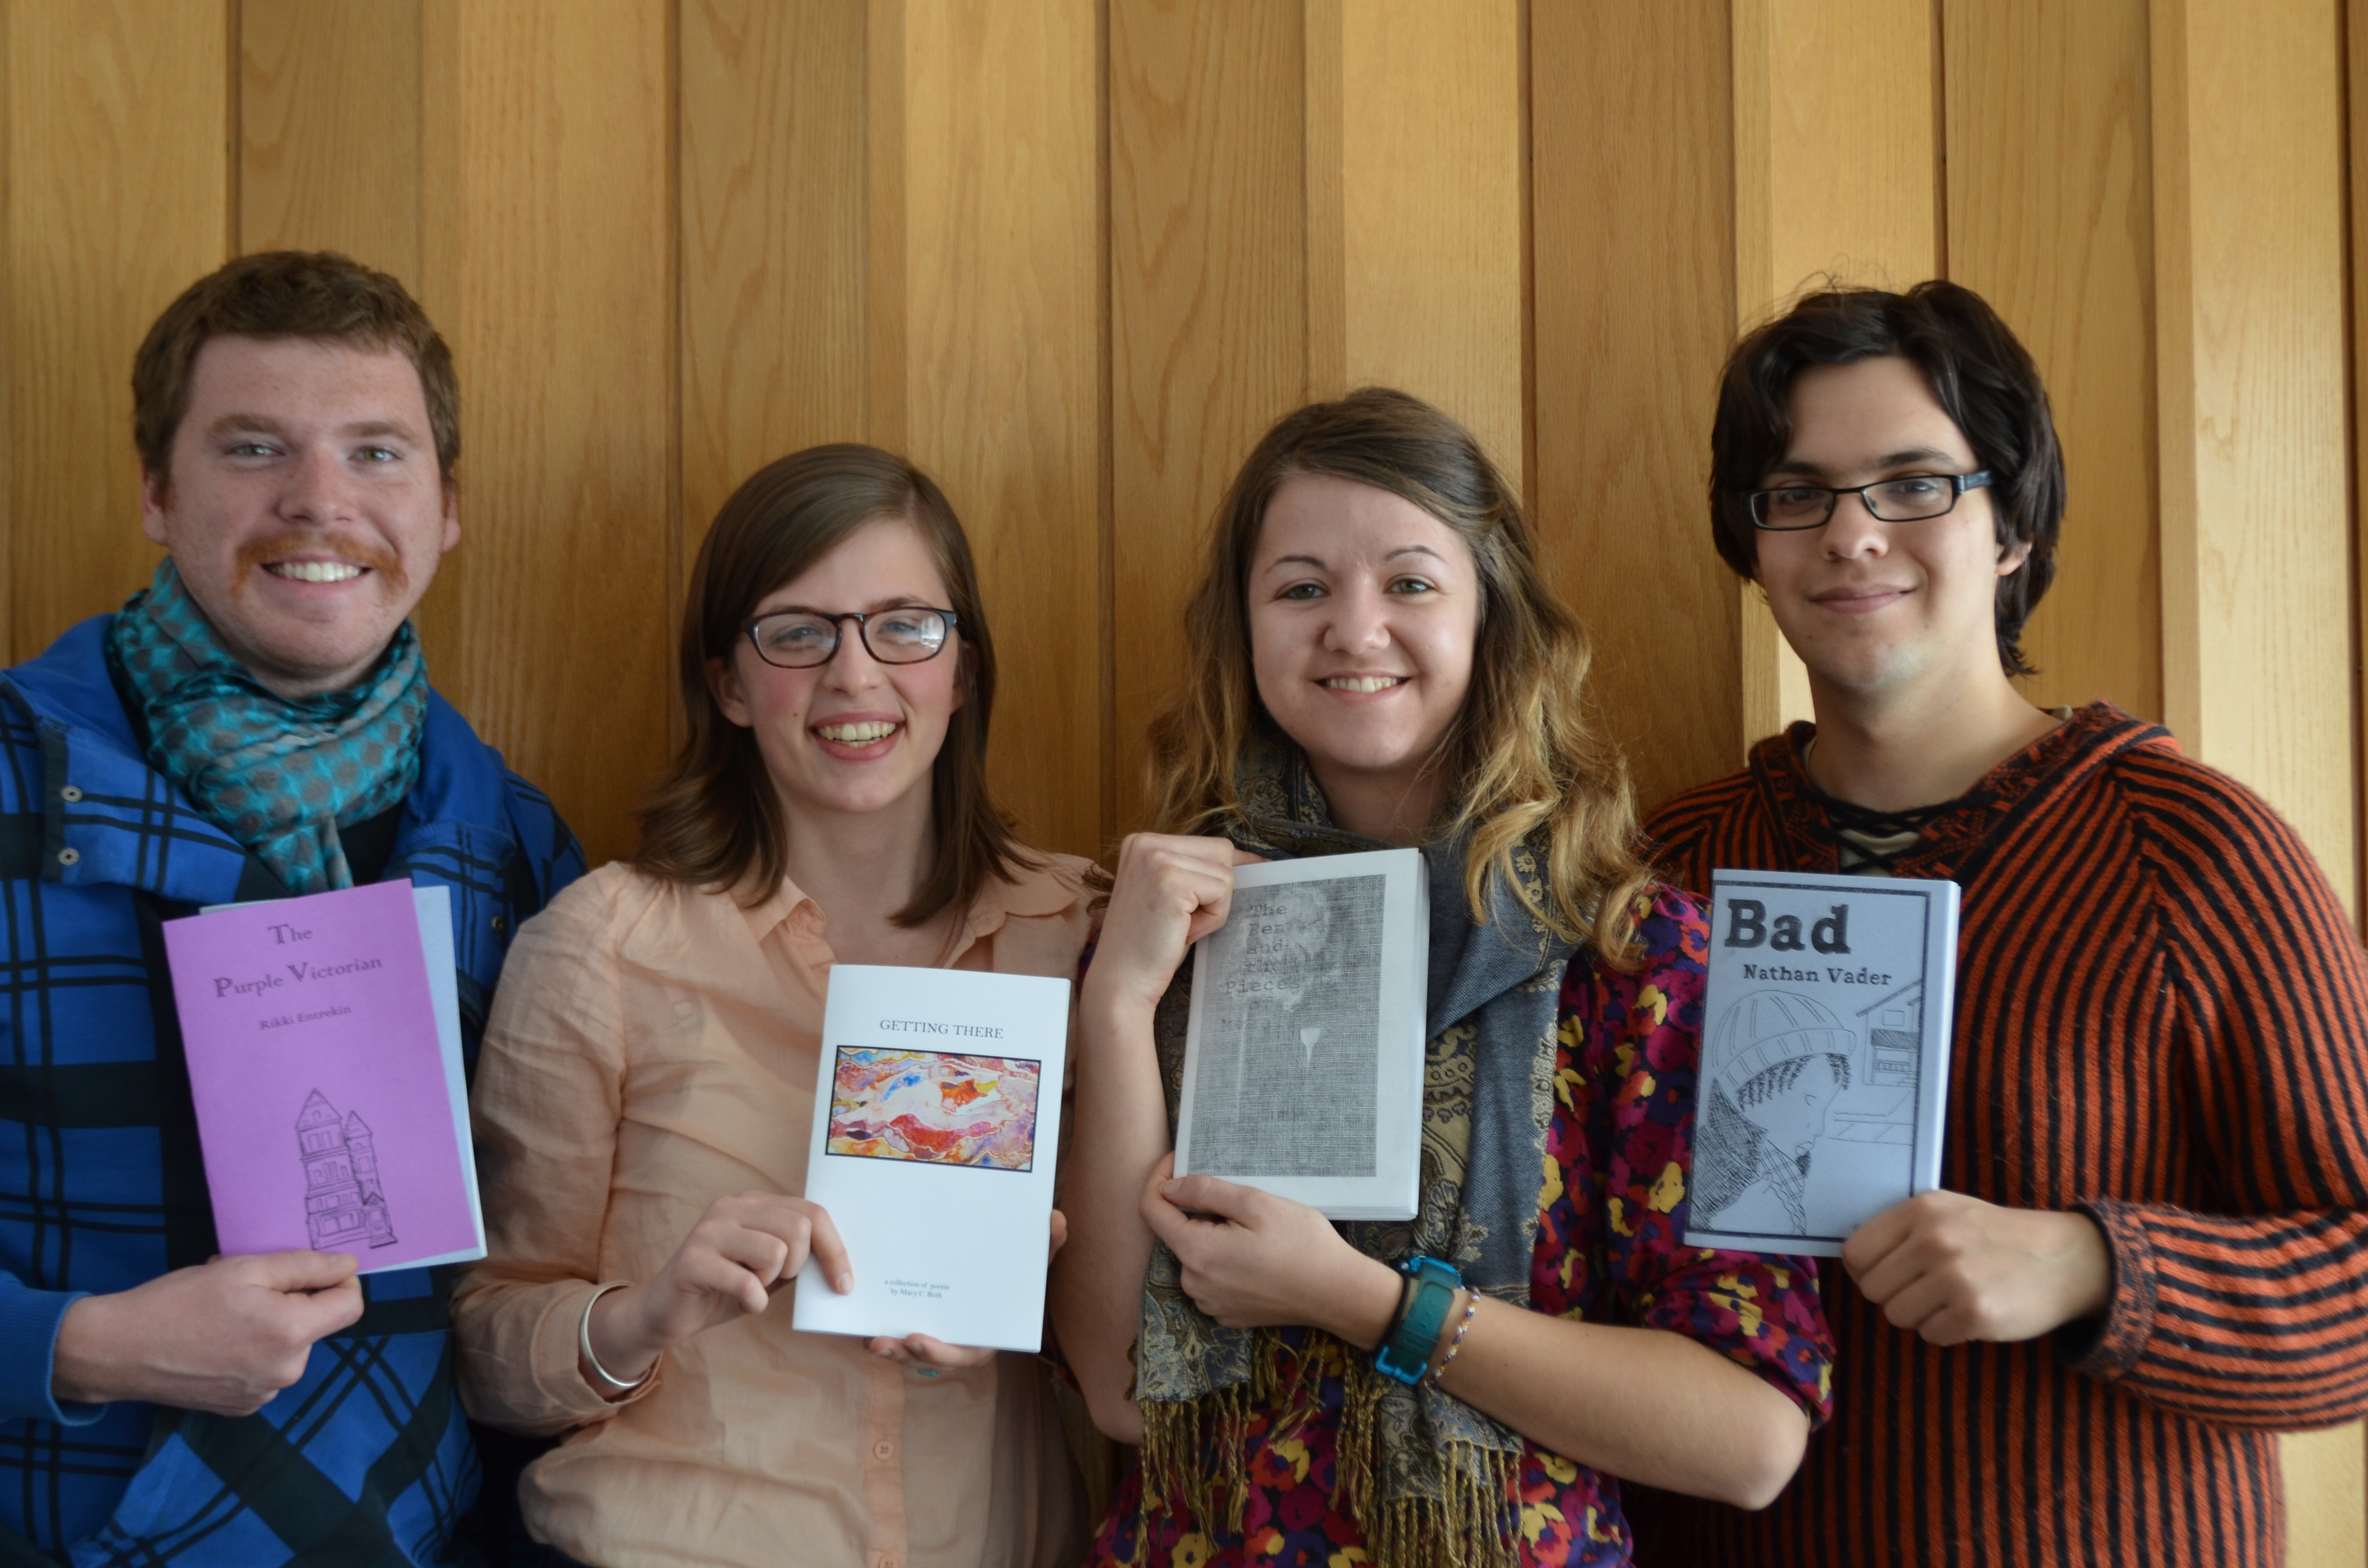 Students pose with their pinchpenny press books